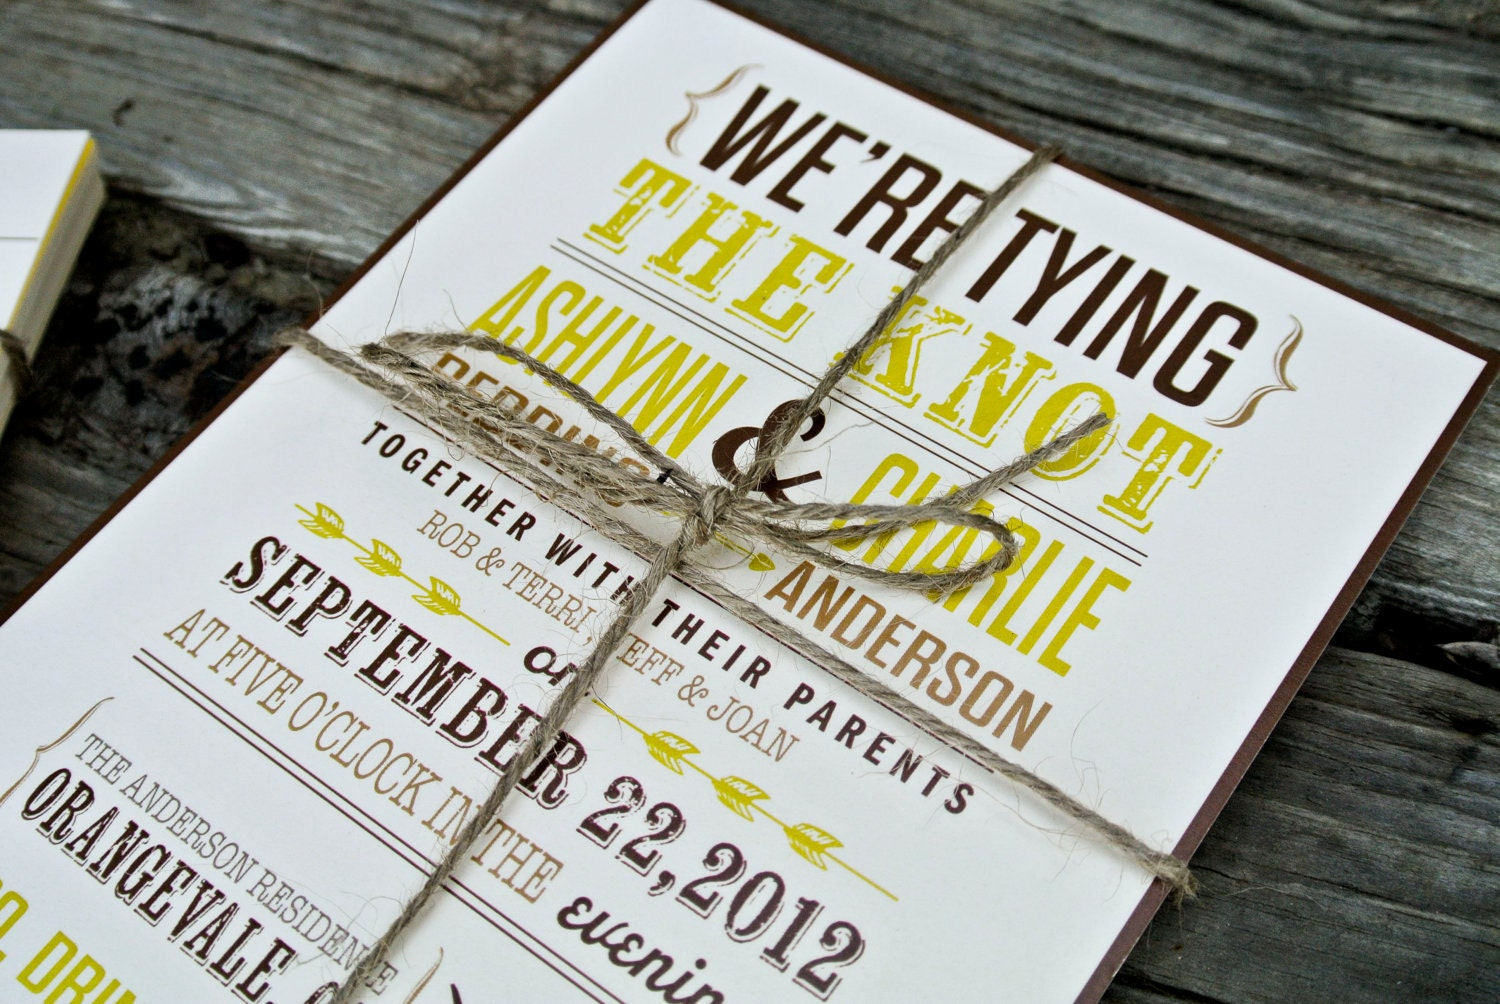 Wedding invitation tying the knot rustic by wideeyespaperco for The knot wedding invitation language